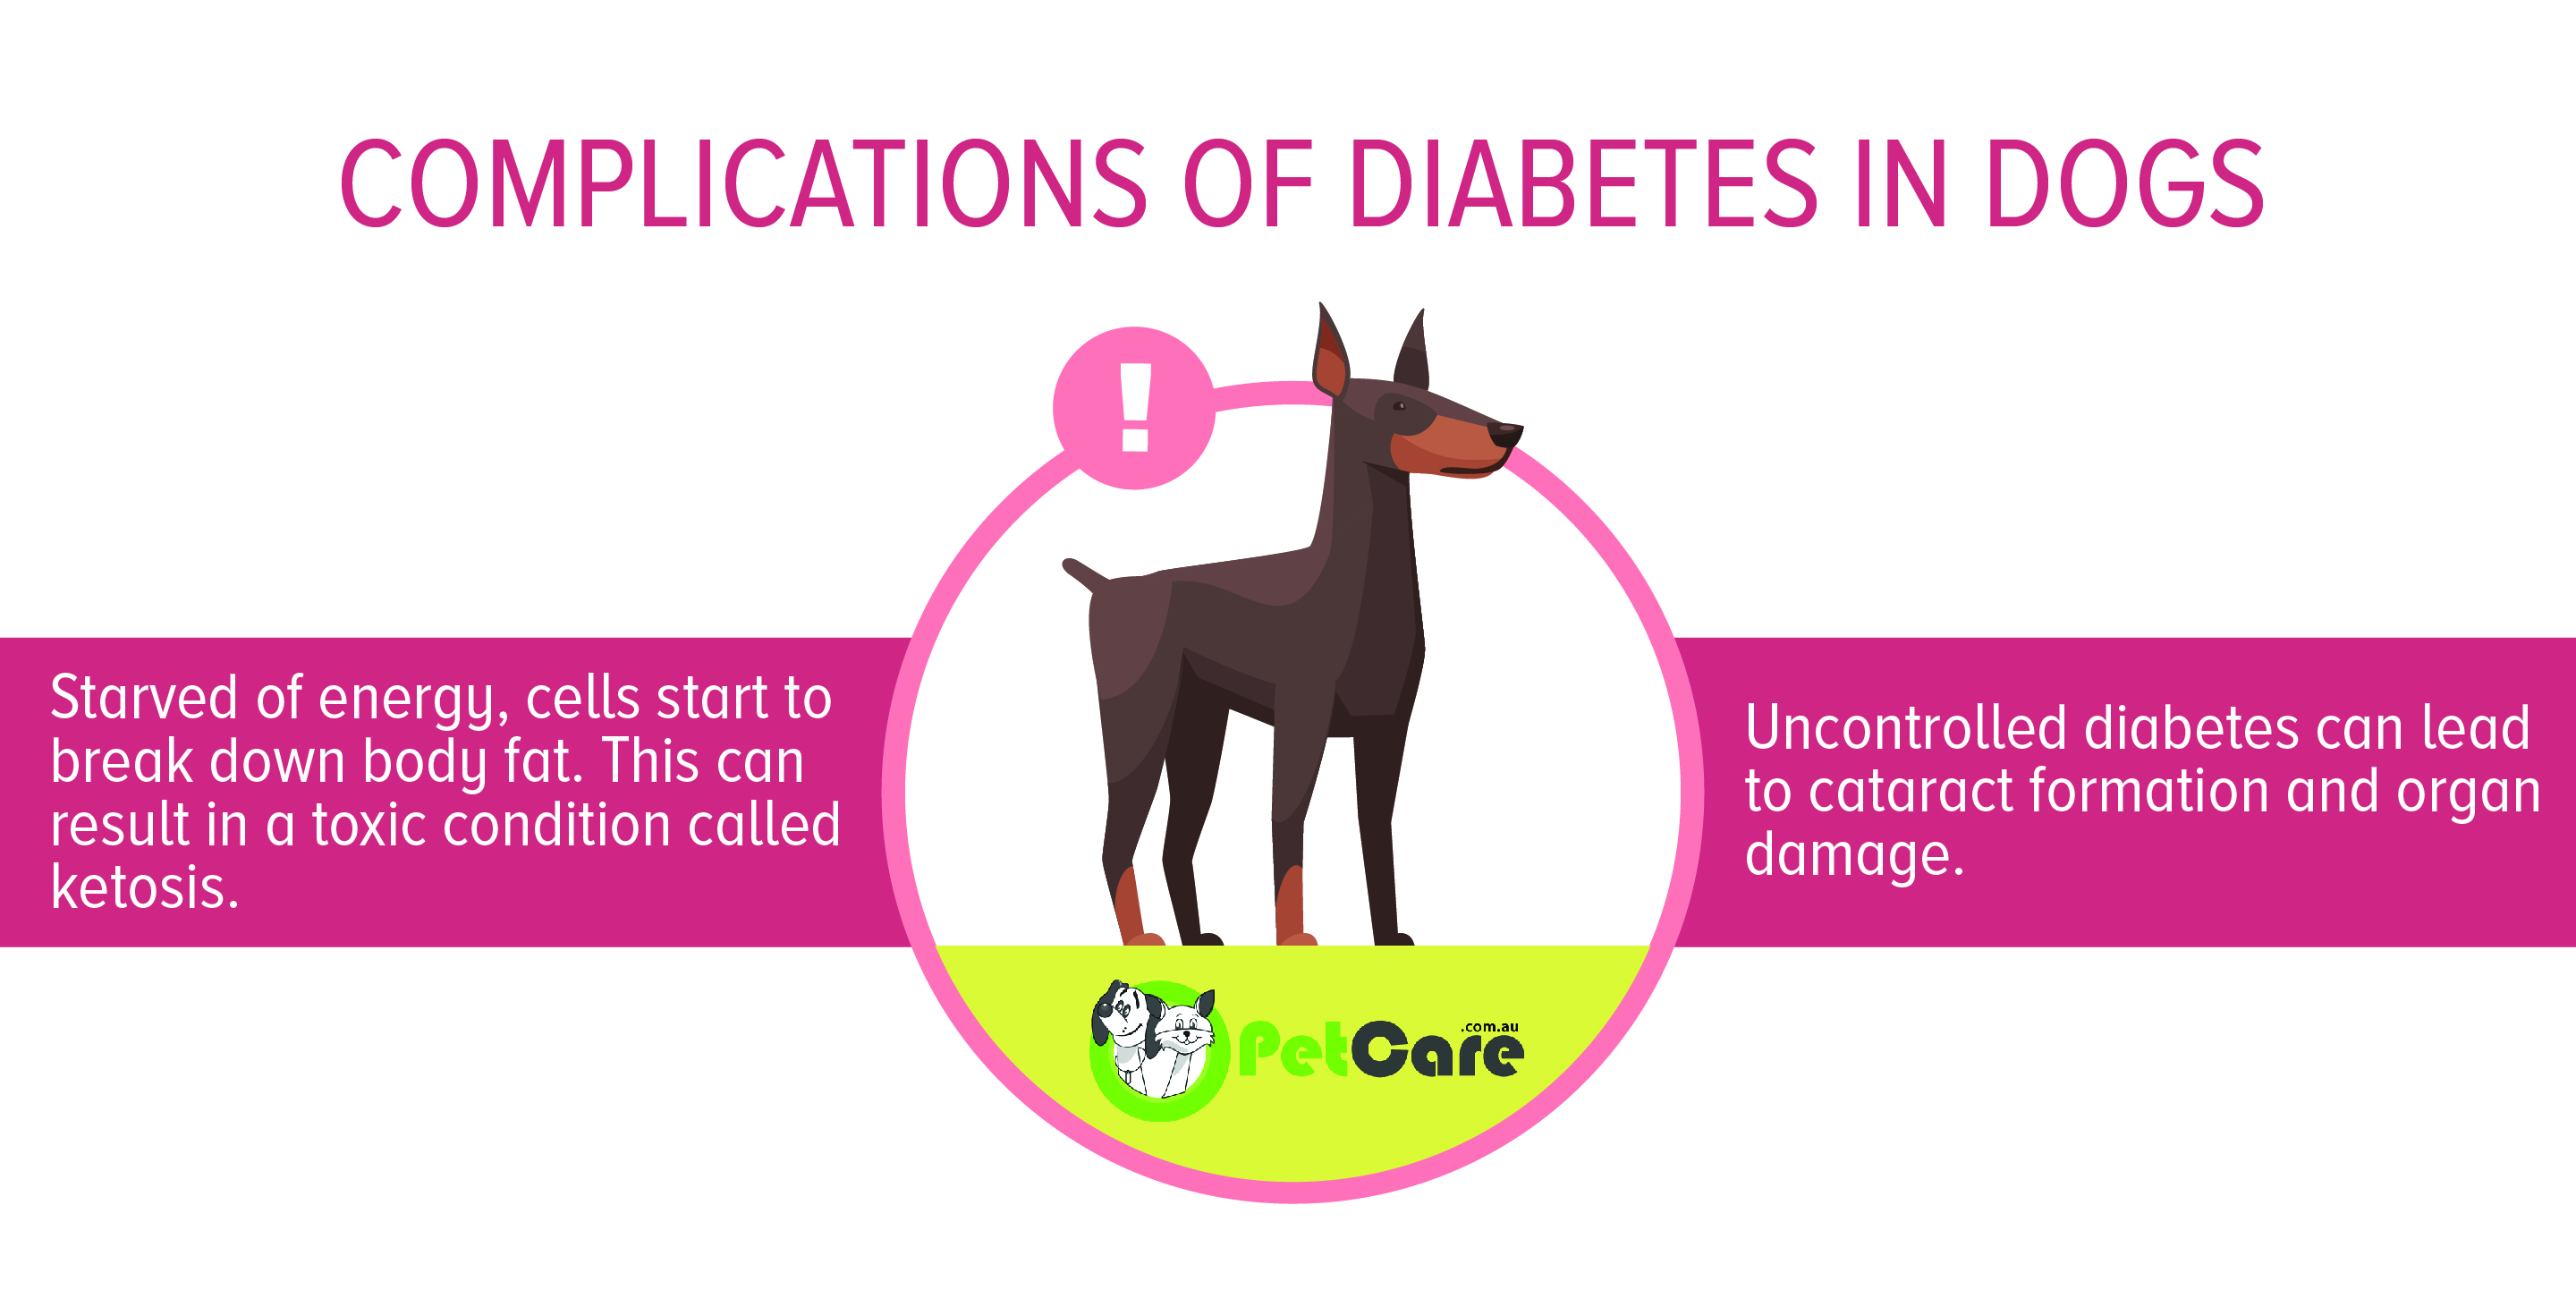 if untreated diabetes in dogs